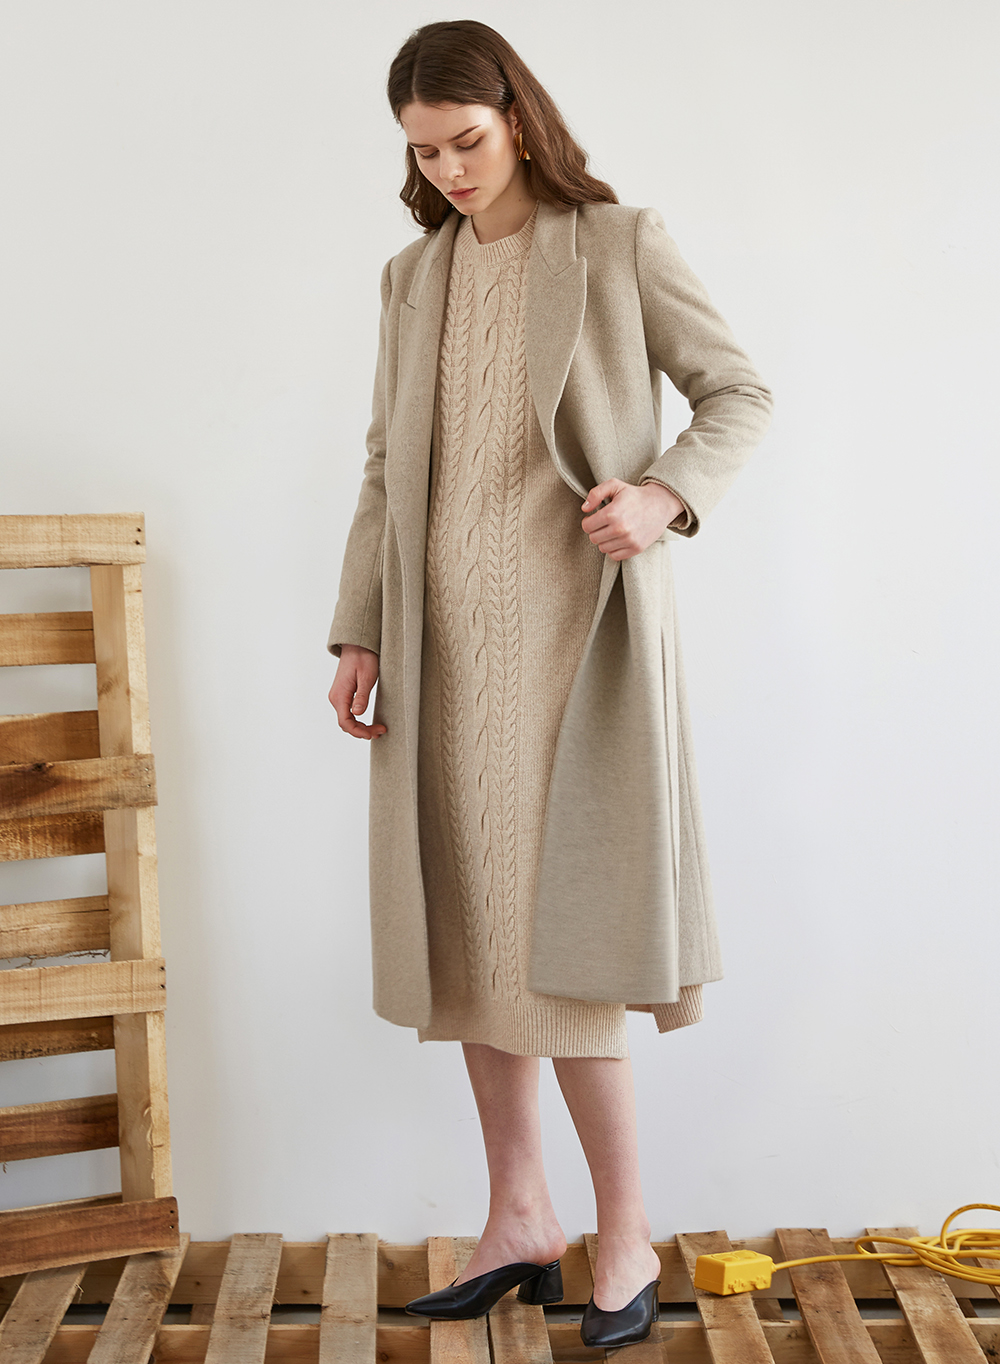 FW18 HIDDEN SINGLE COAT LIGHTBEIGE